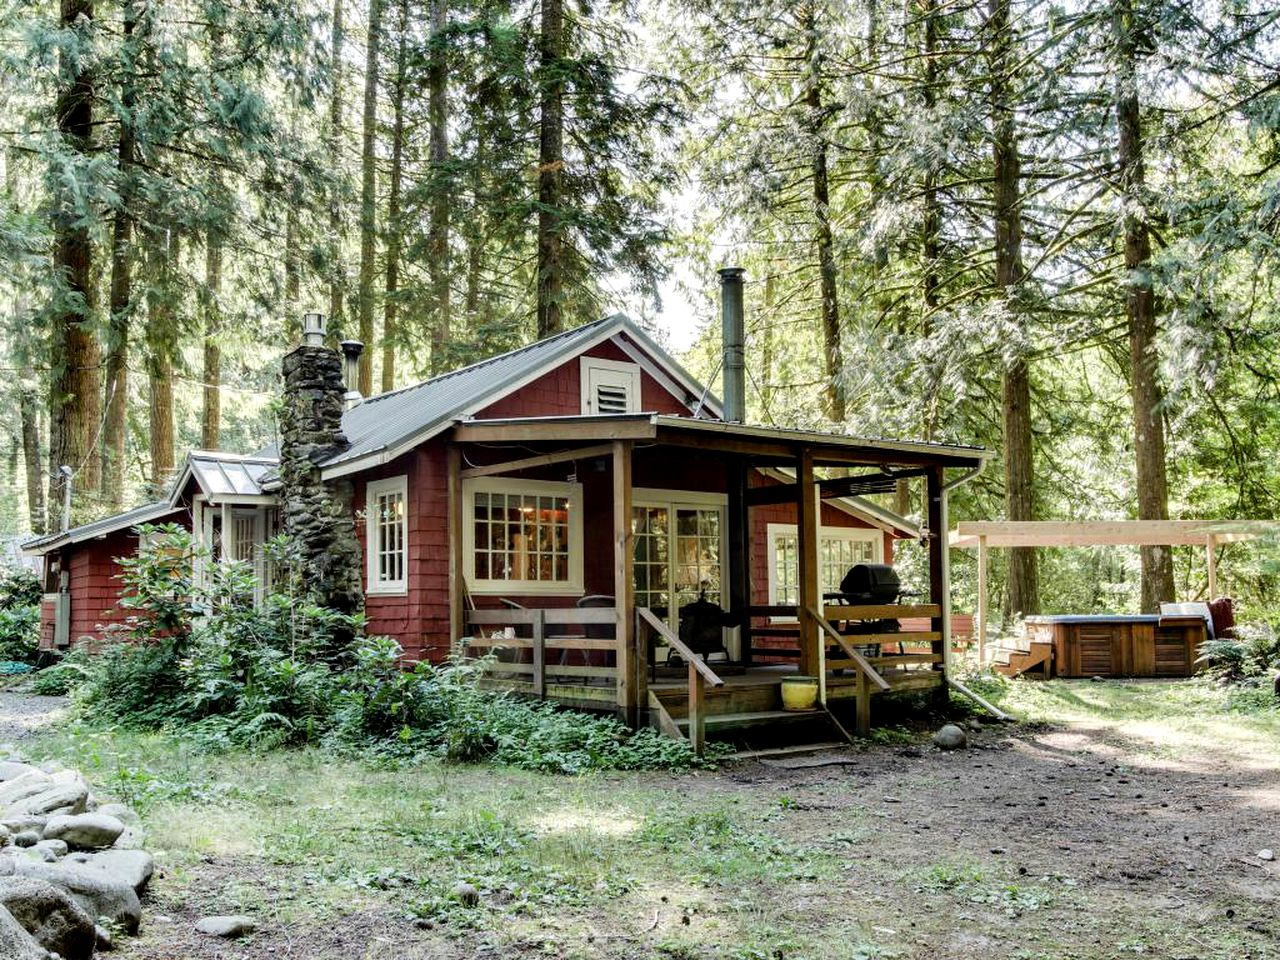 Private cabin rental surrounded by trees in forest clearing near Mount Hood, Oregon.